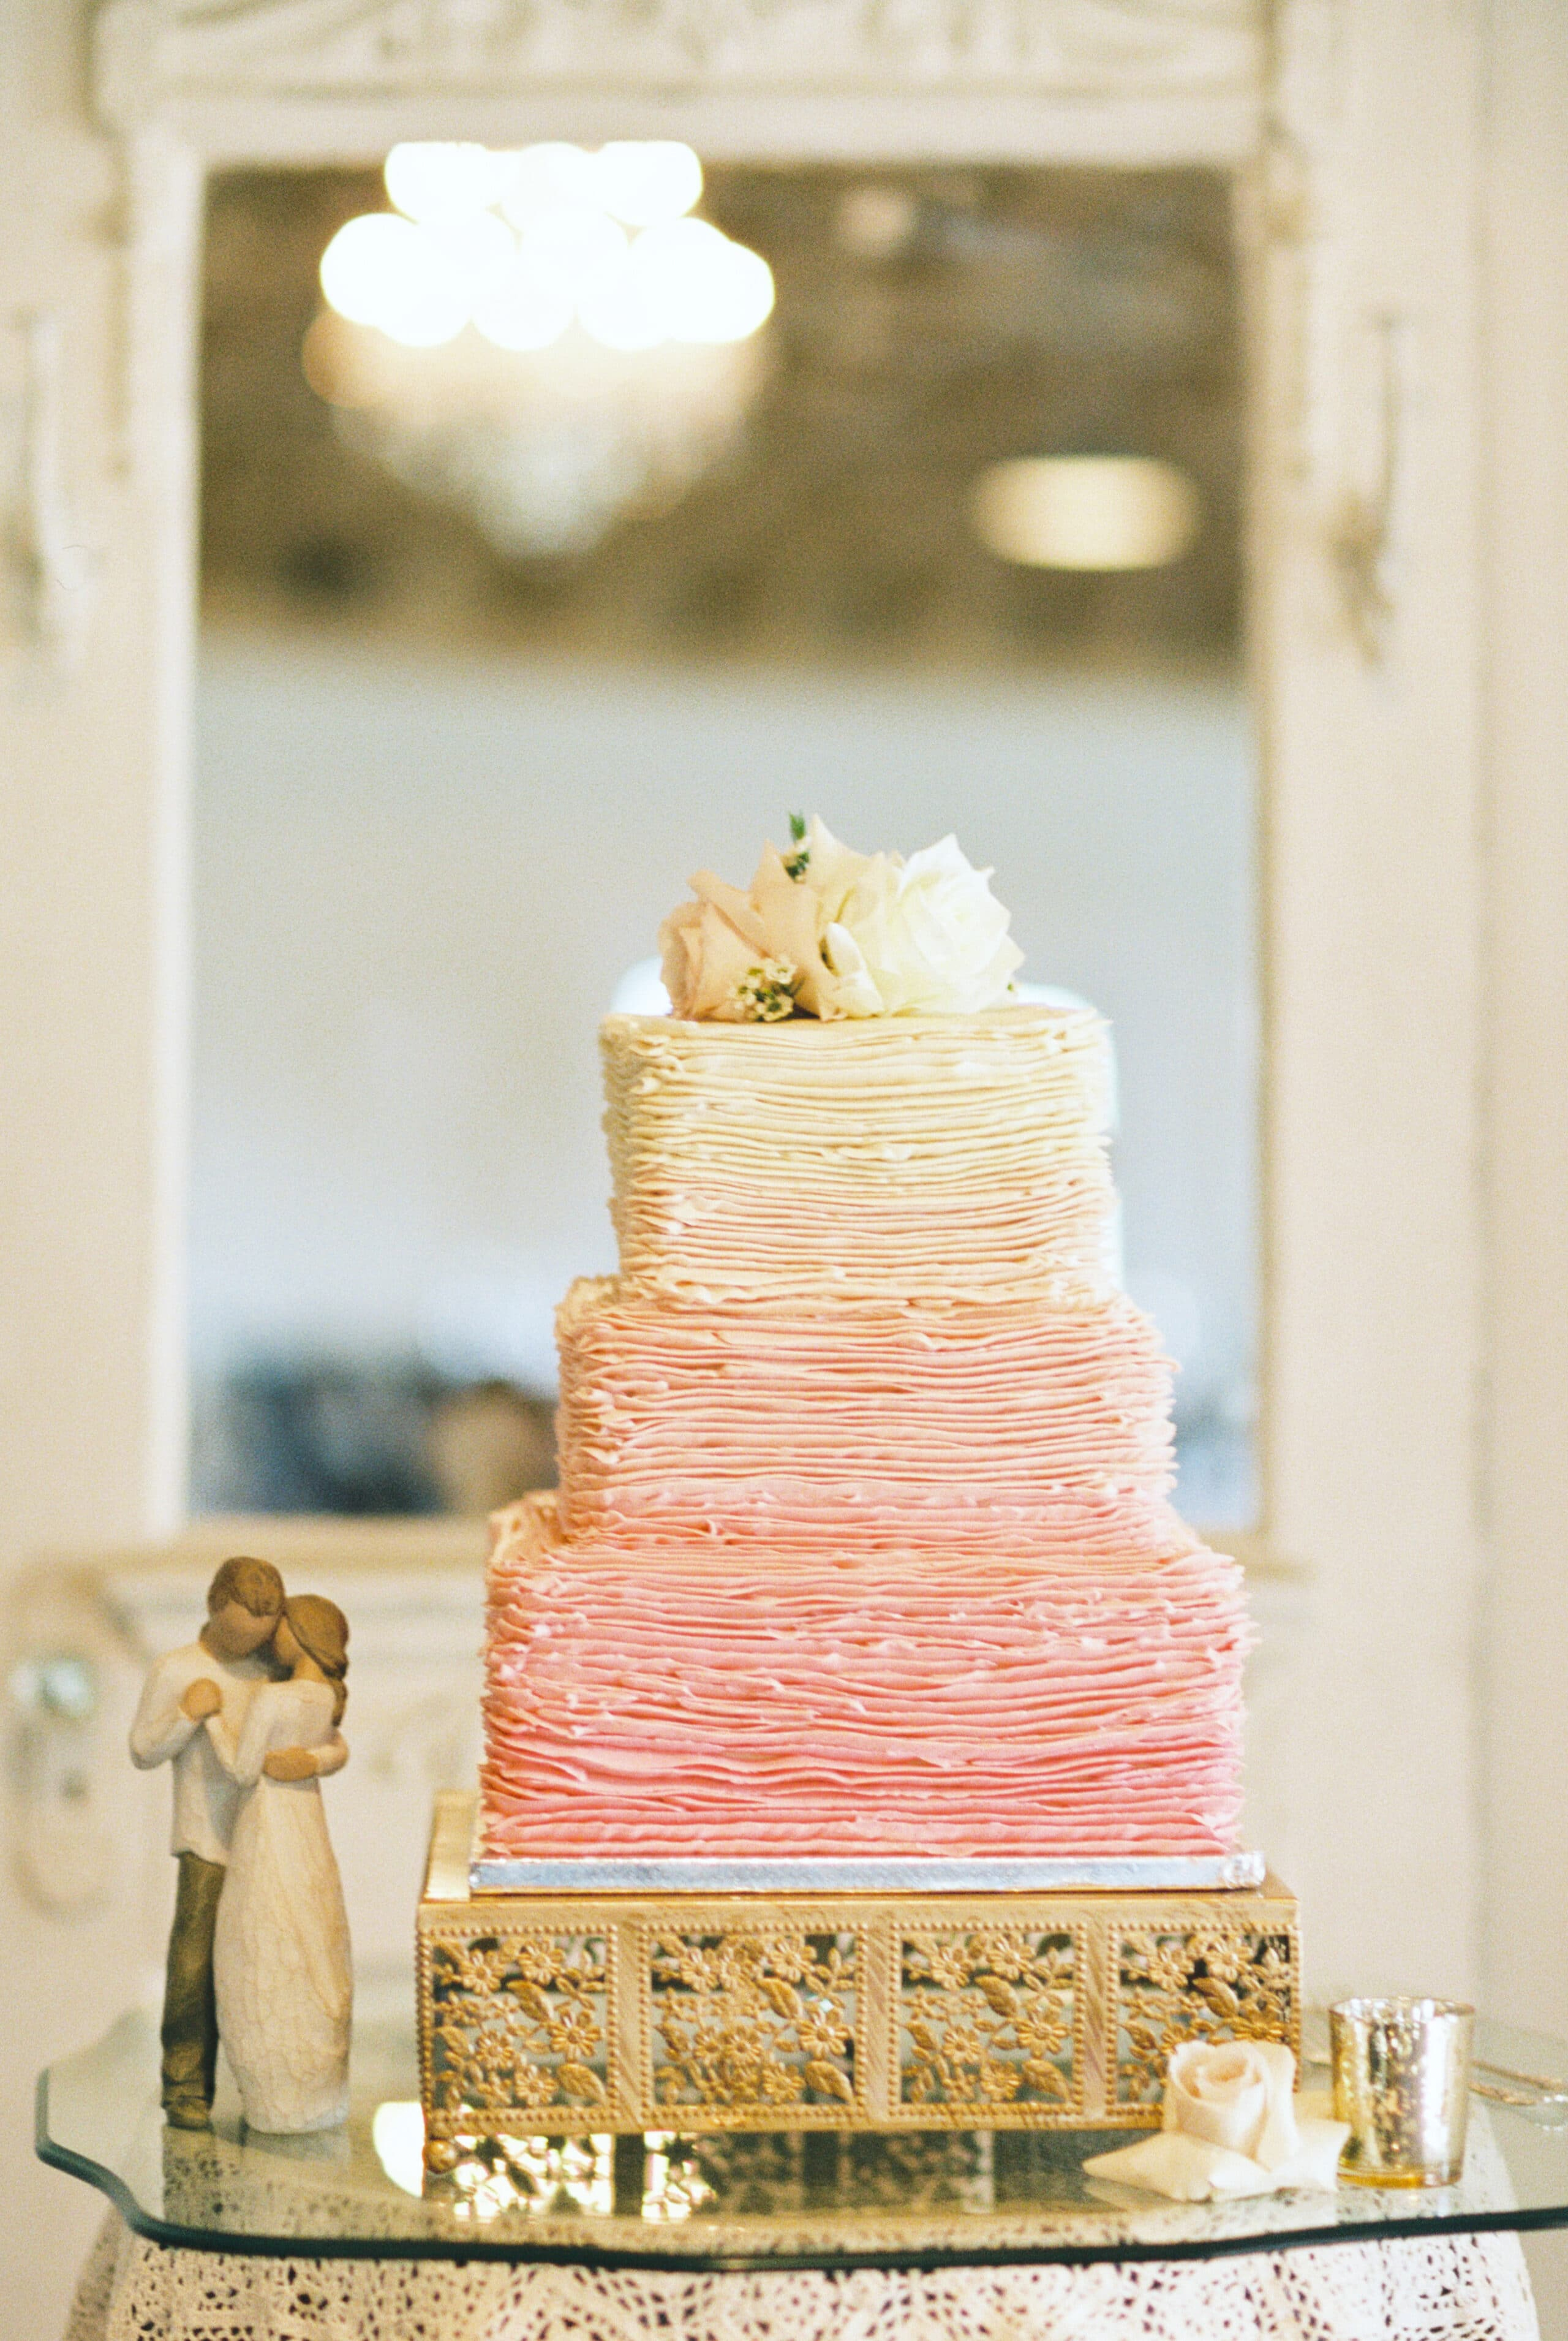 Photo By: Kati Rosado Photography ~ Cake By: Sweet by Holly